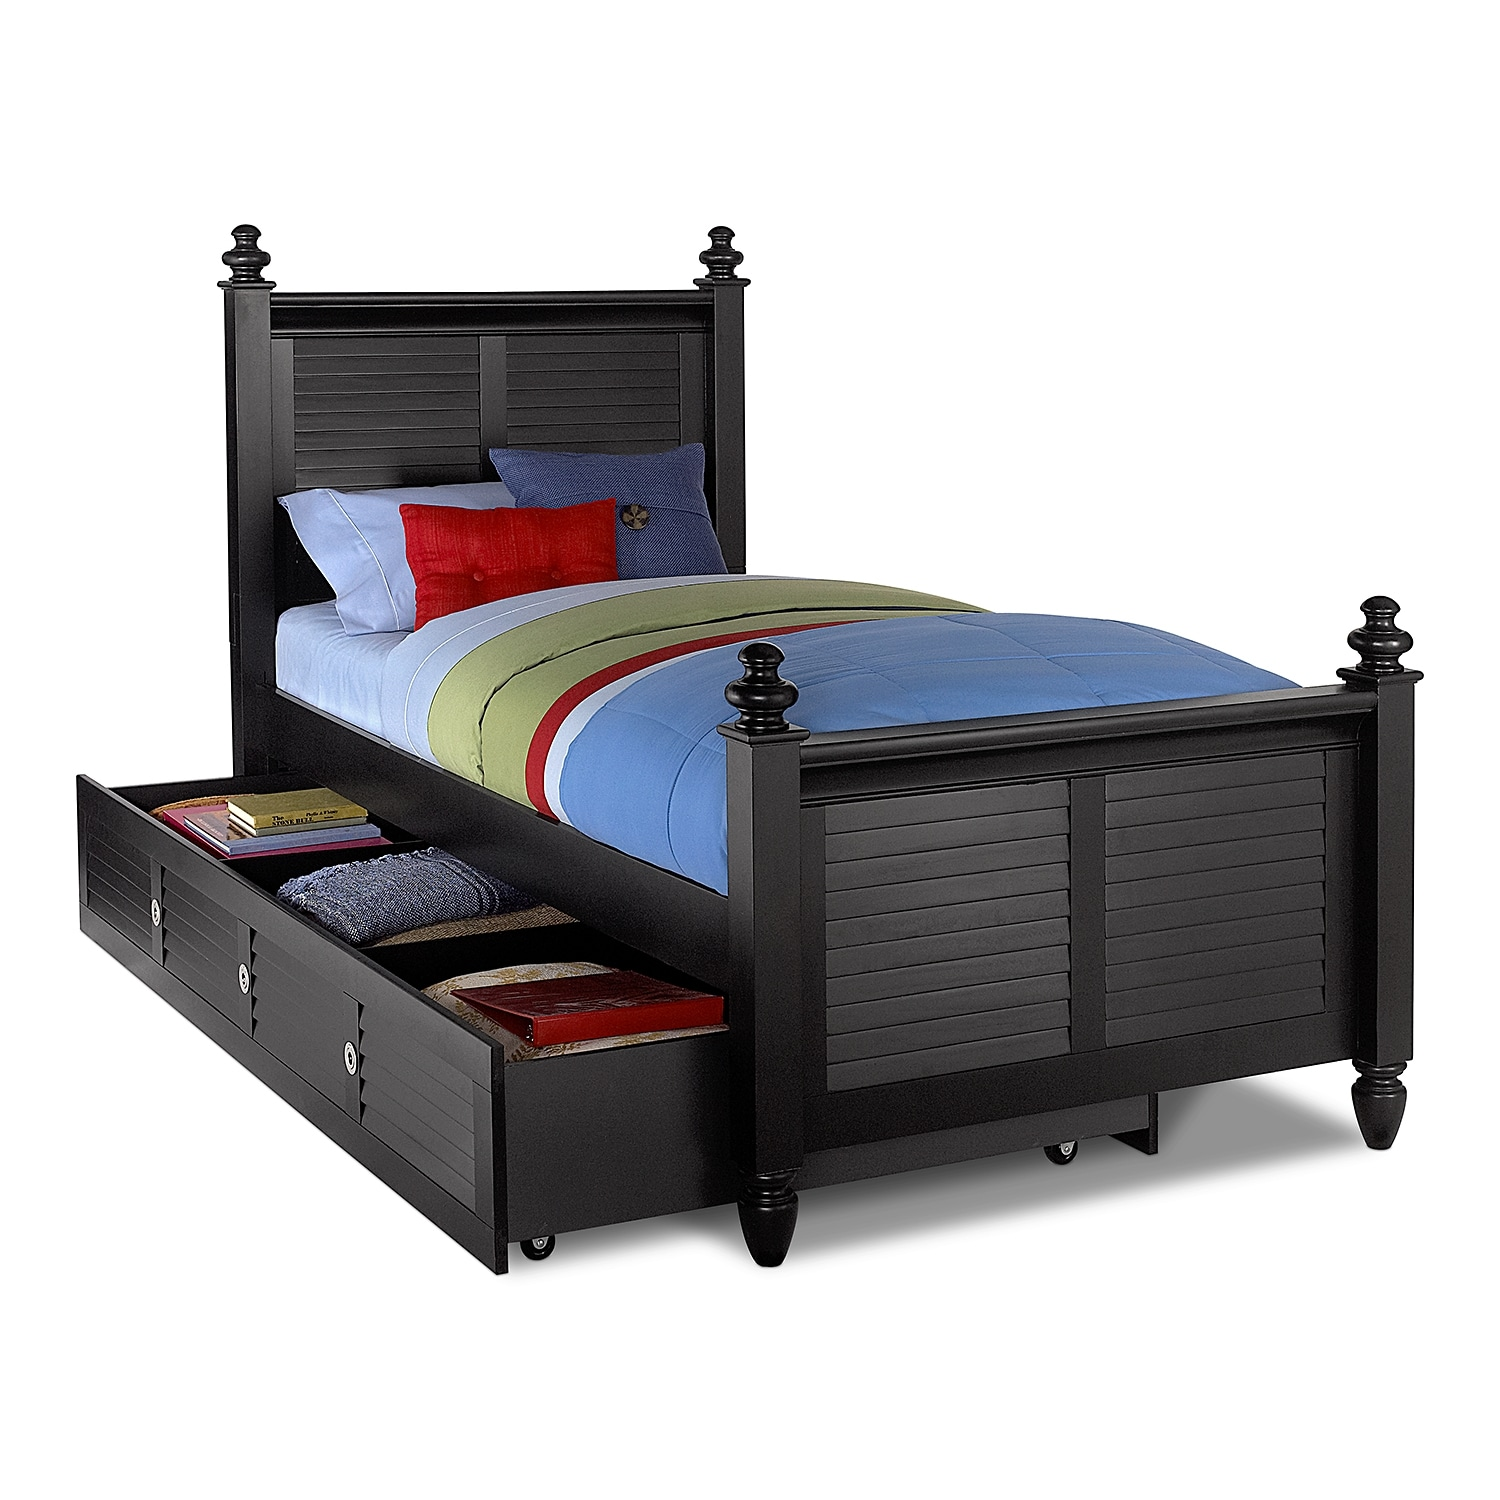 twin mattress anadolukardiyolderg frame and cute bed with